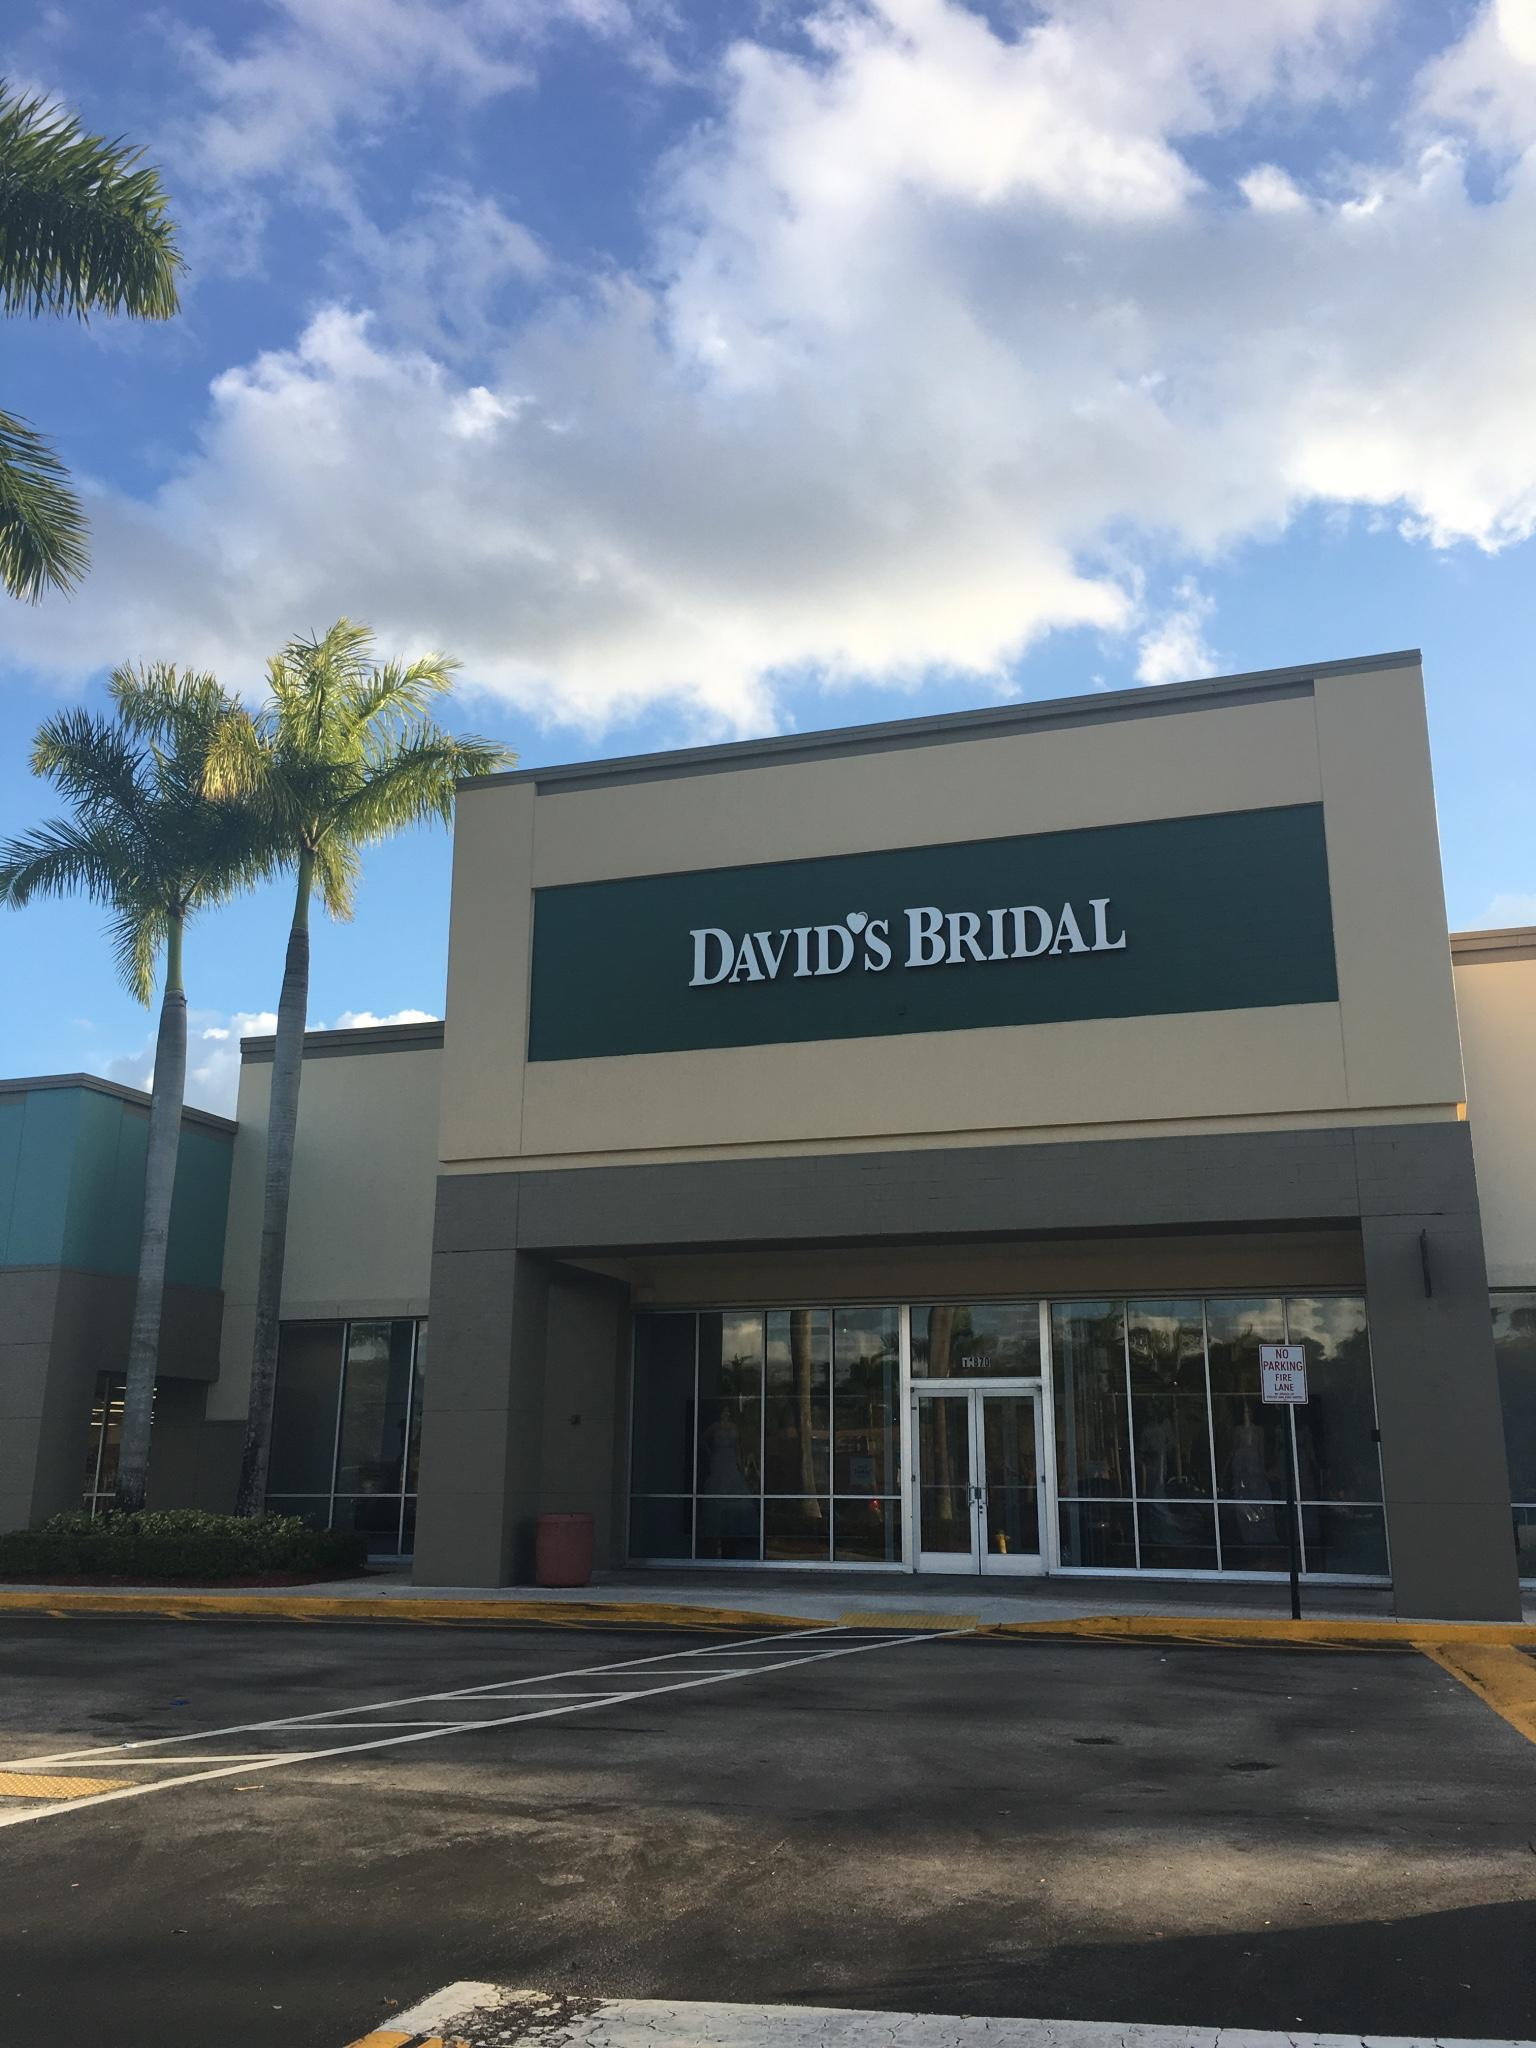 david s bridal in pembroke pines fl 954 517 9 pembroke pines fl 33026